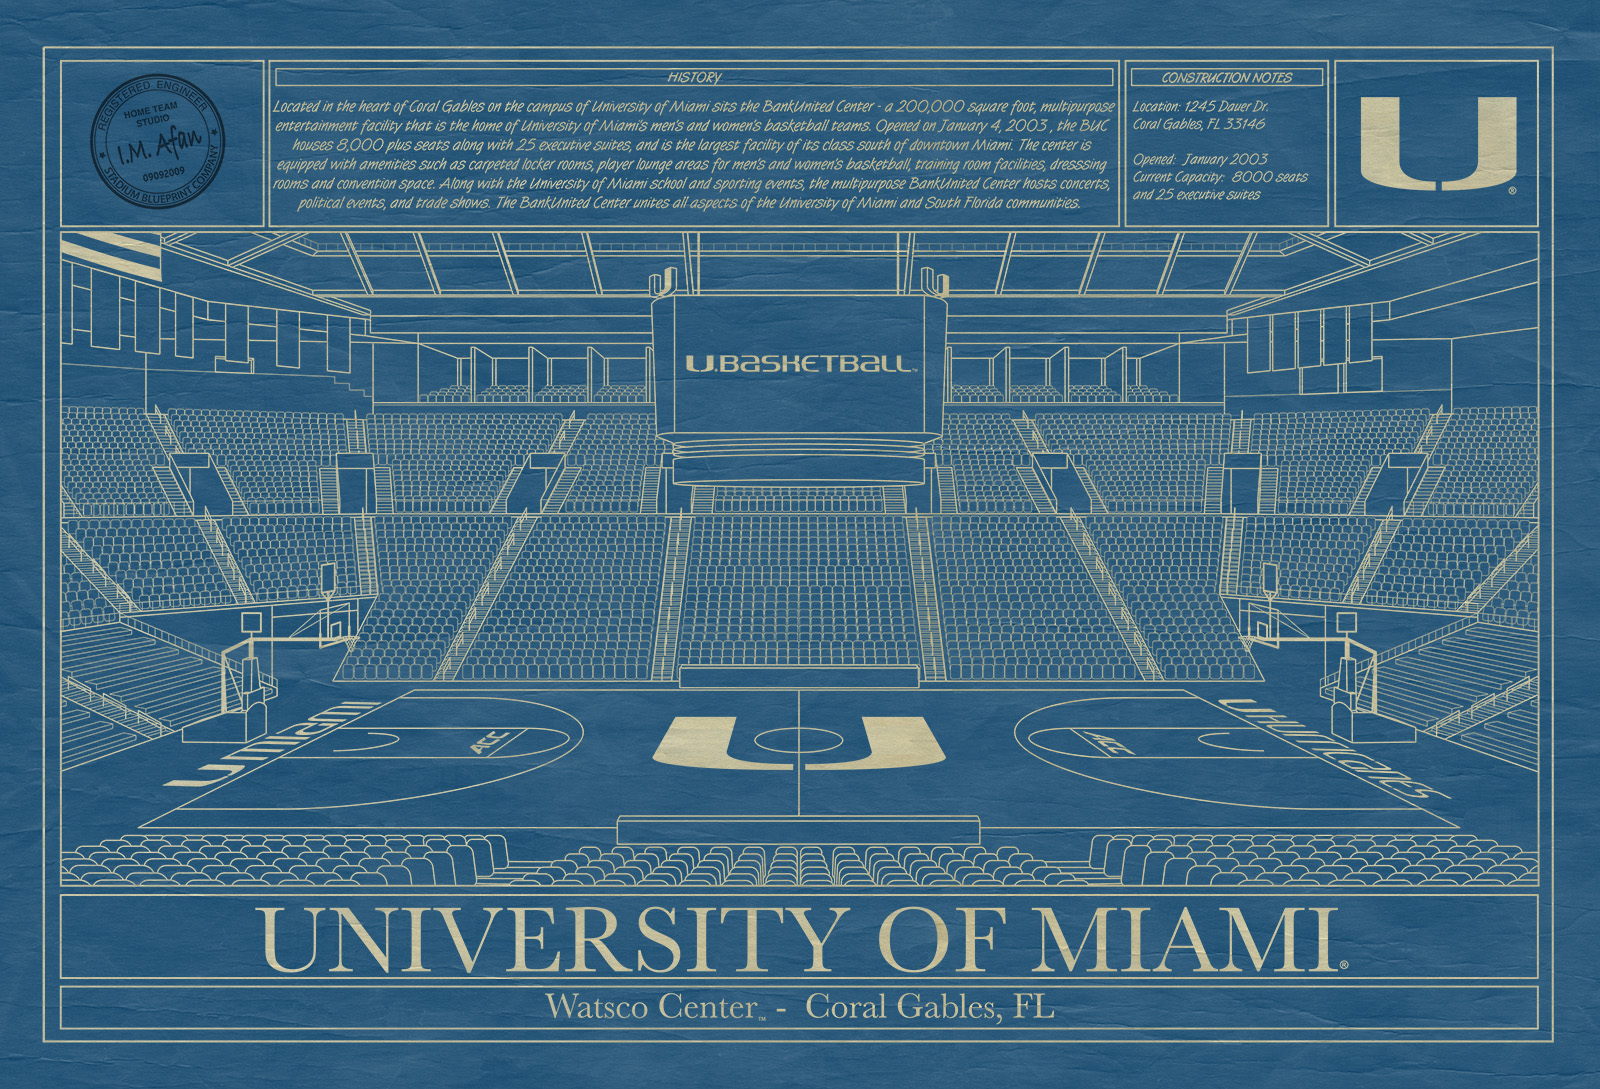 Miami wastco center blueprint art stadium blueprint company click malvernweather